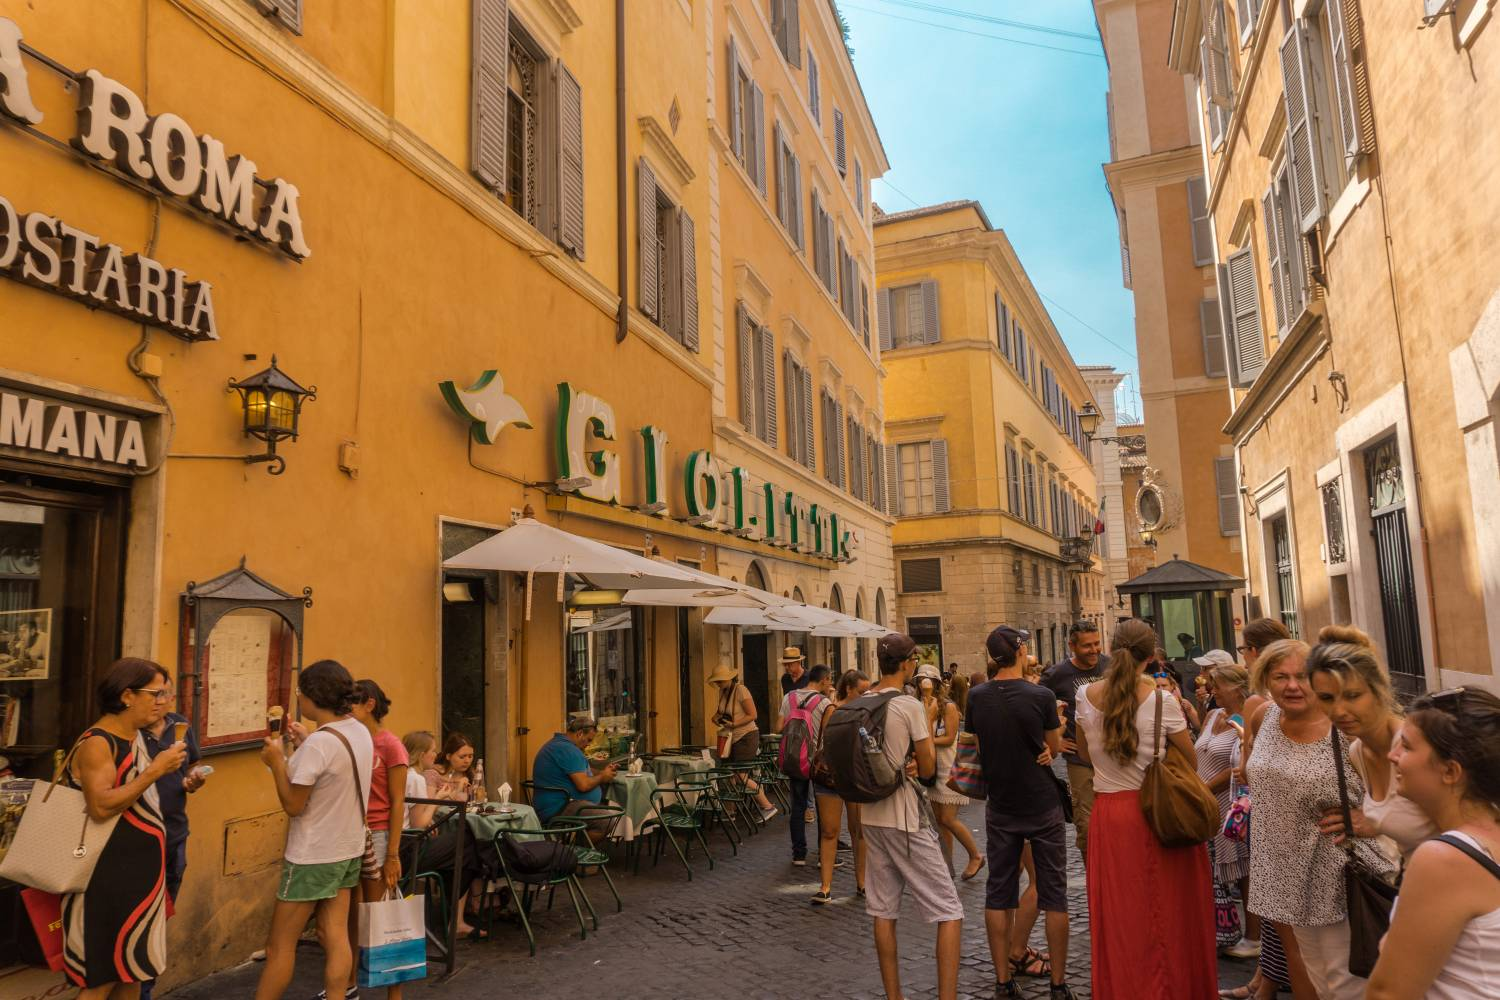 Rome in 2 days: Rome Travel Guide & Itinerary - Giolitti Gelato